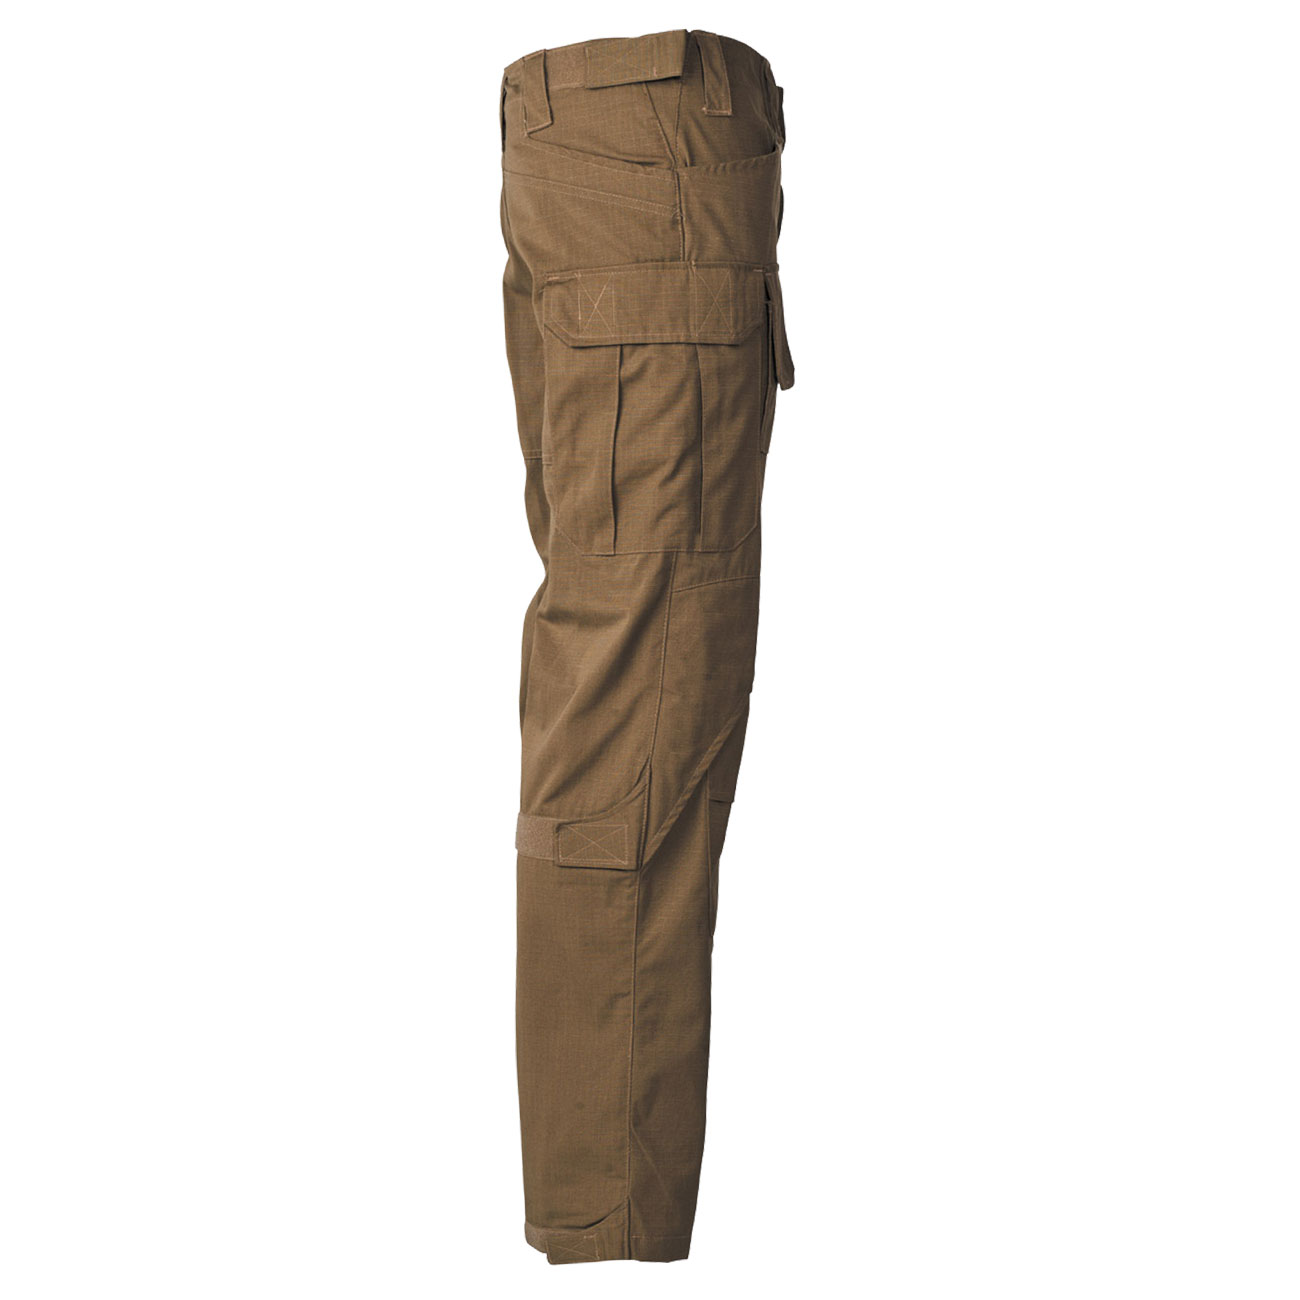 MFH Hose Mission coyote tan 2